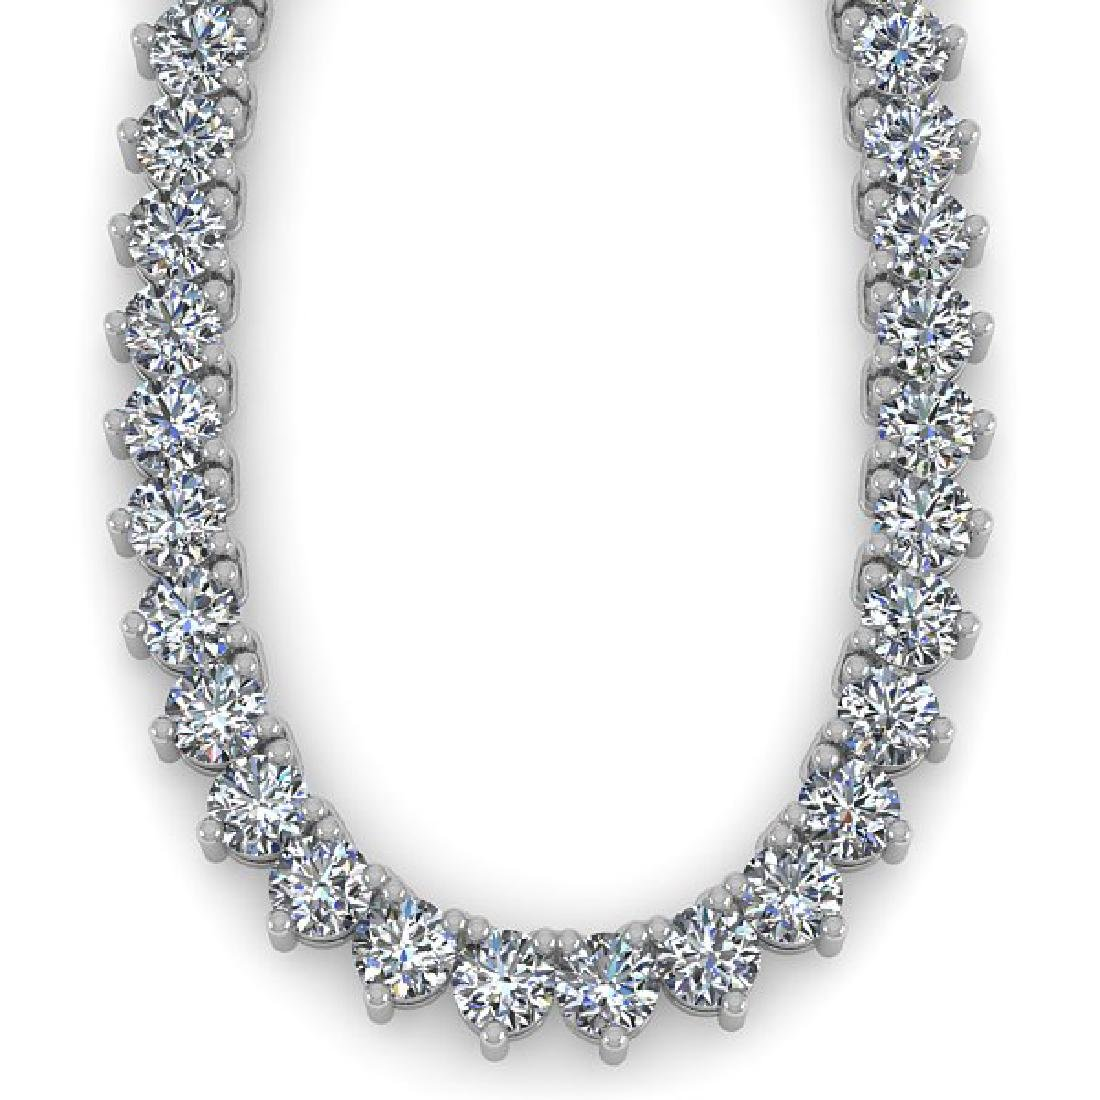 65 CTW Solitaire Certified SI Diamond Necklace 14K - 2